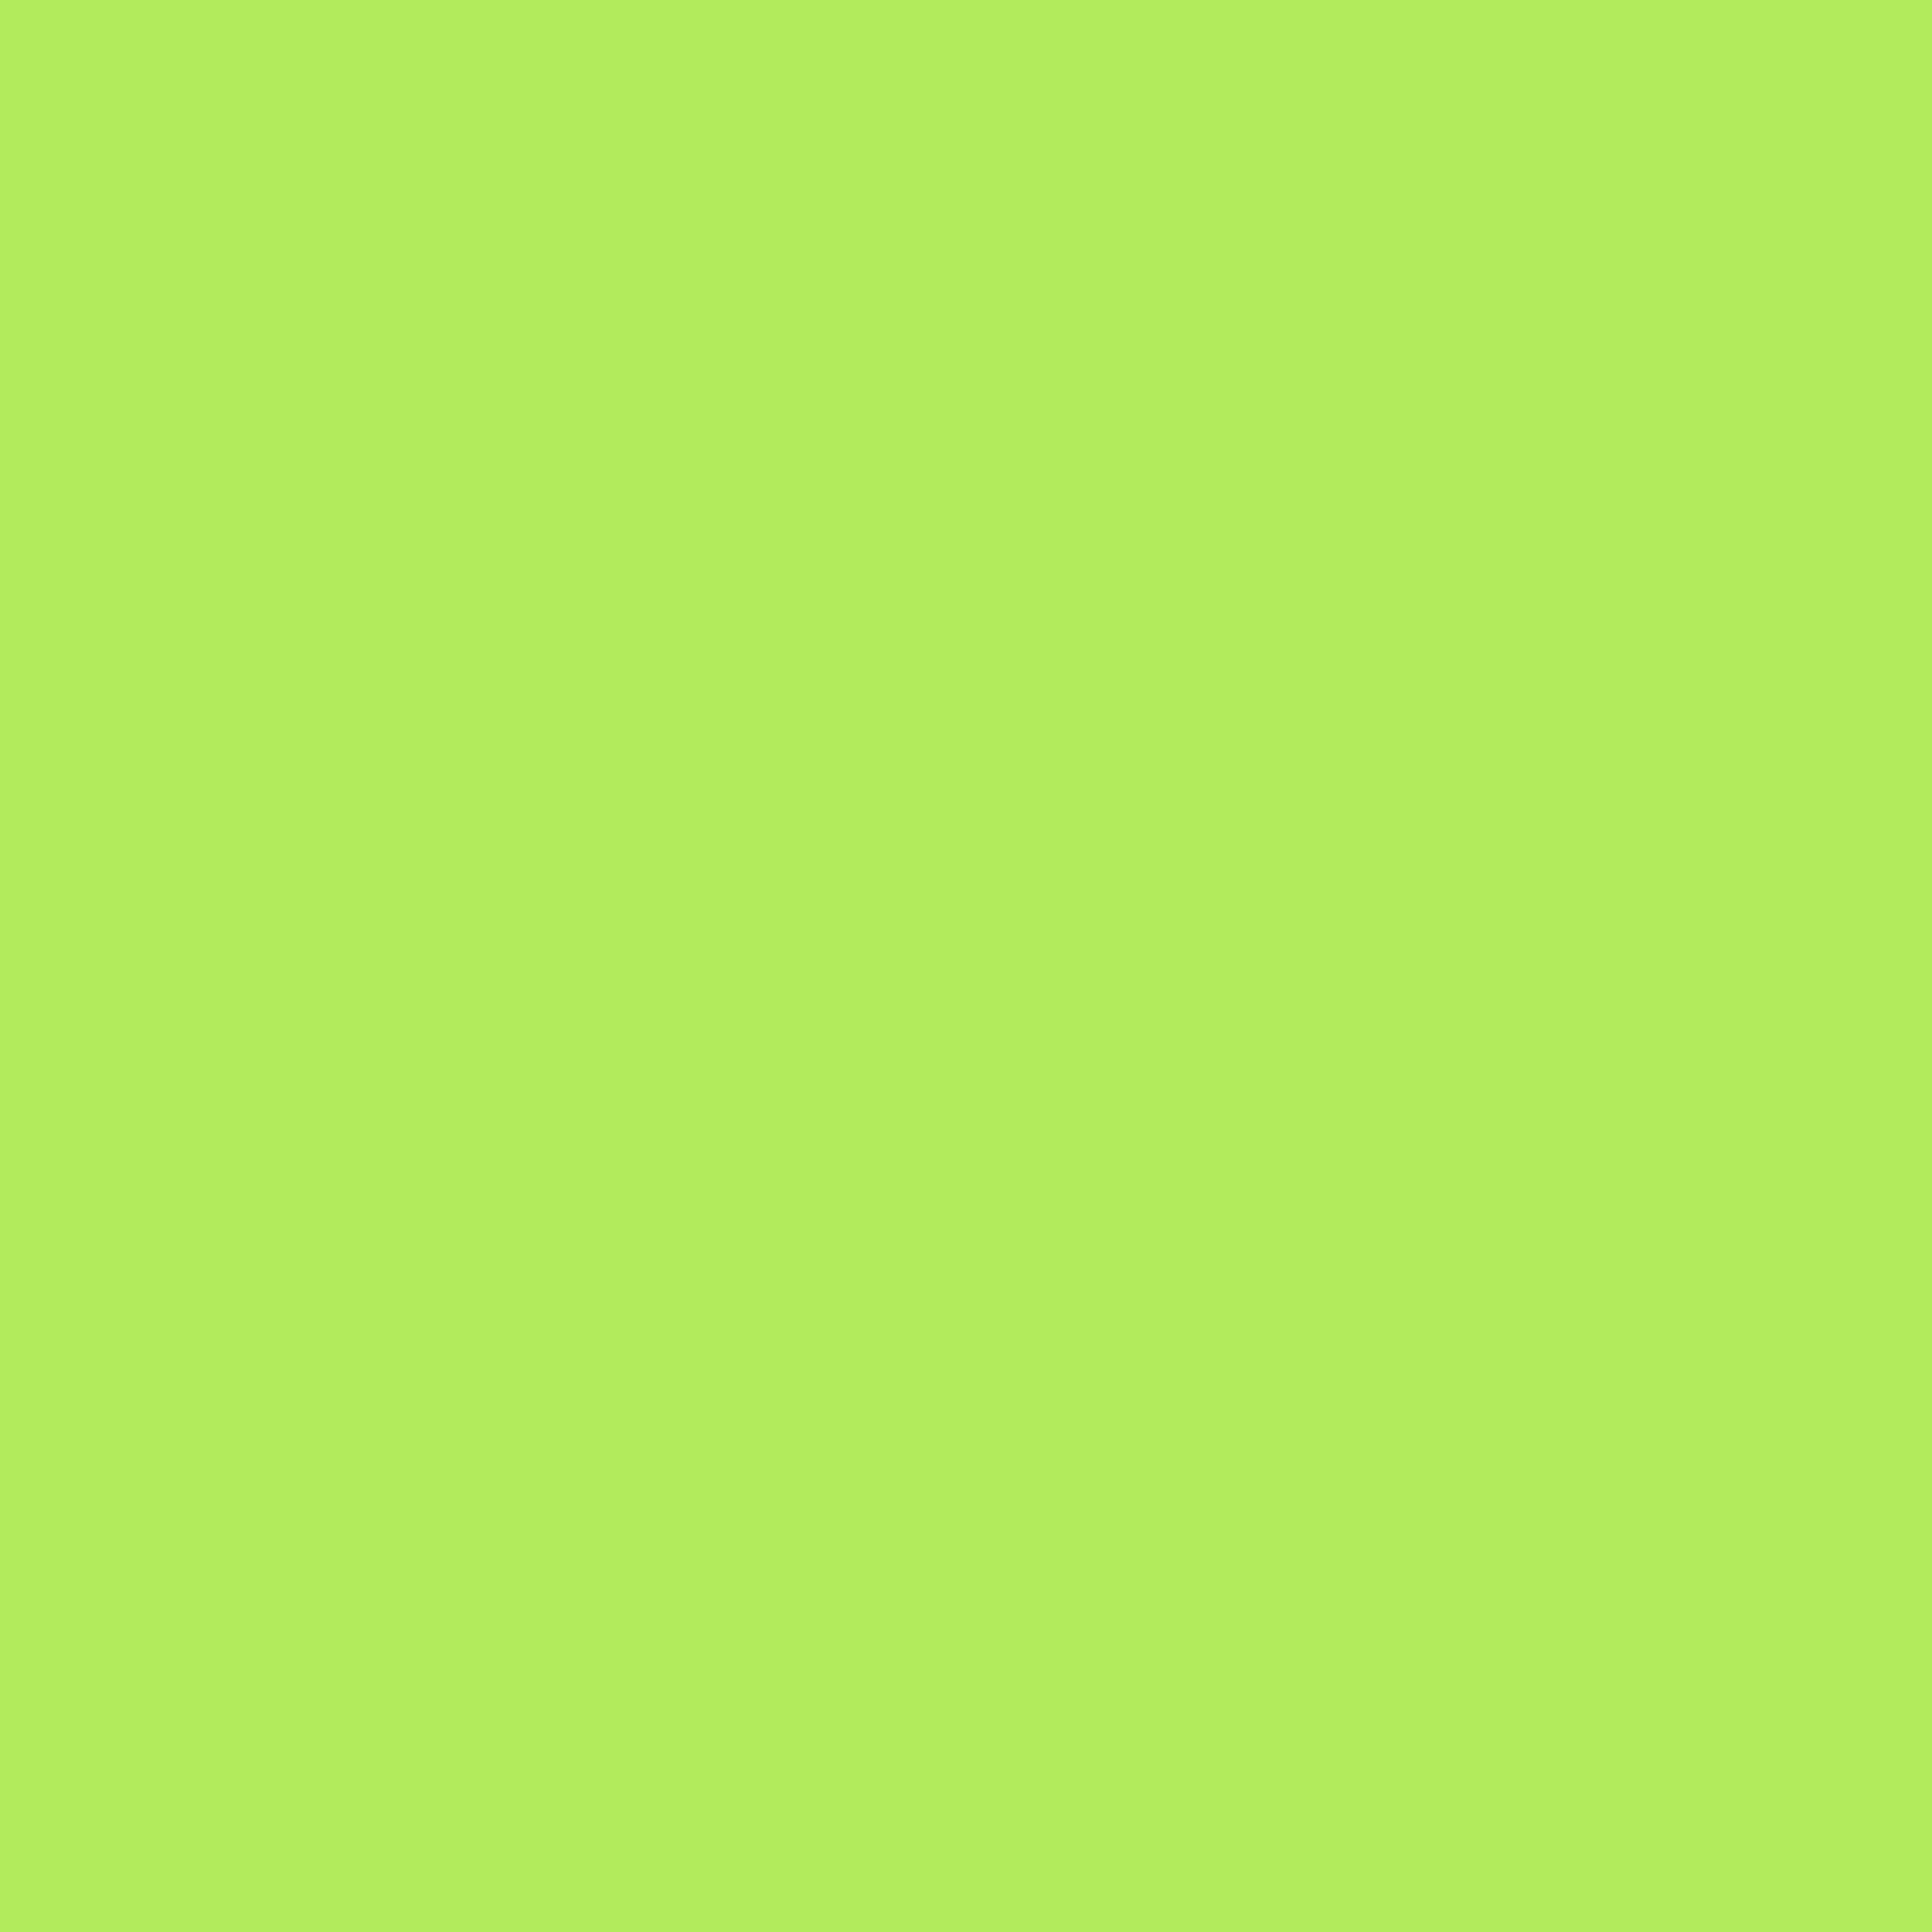 2732x2732 Inchworm Solid Color Background